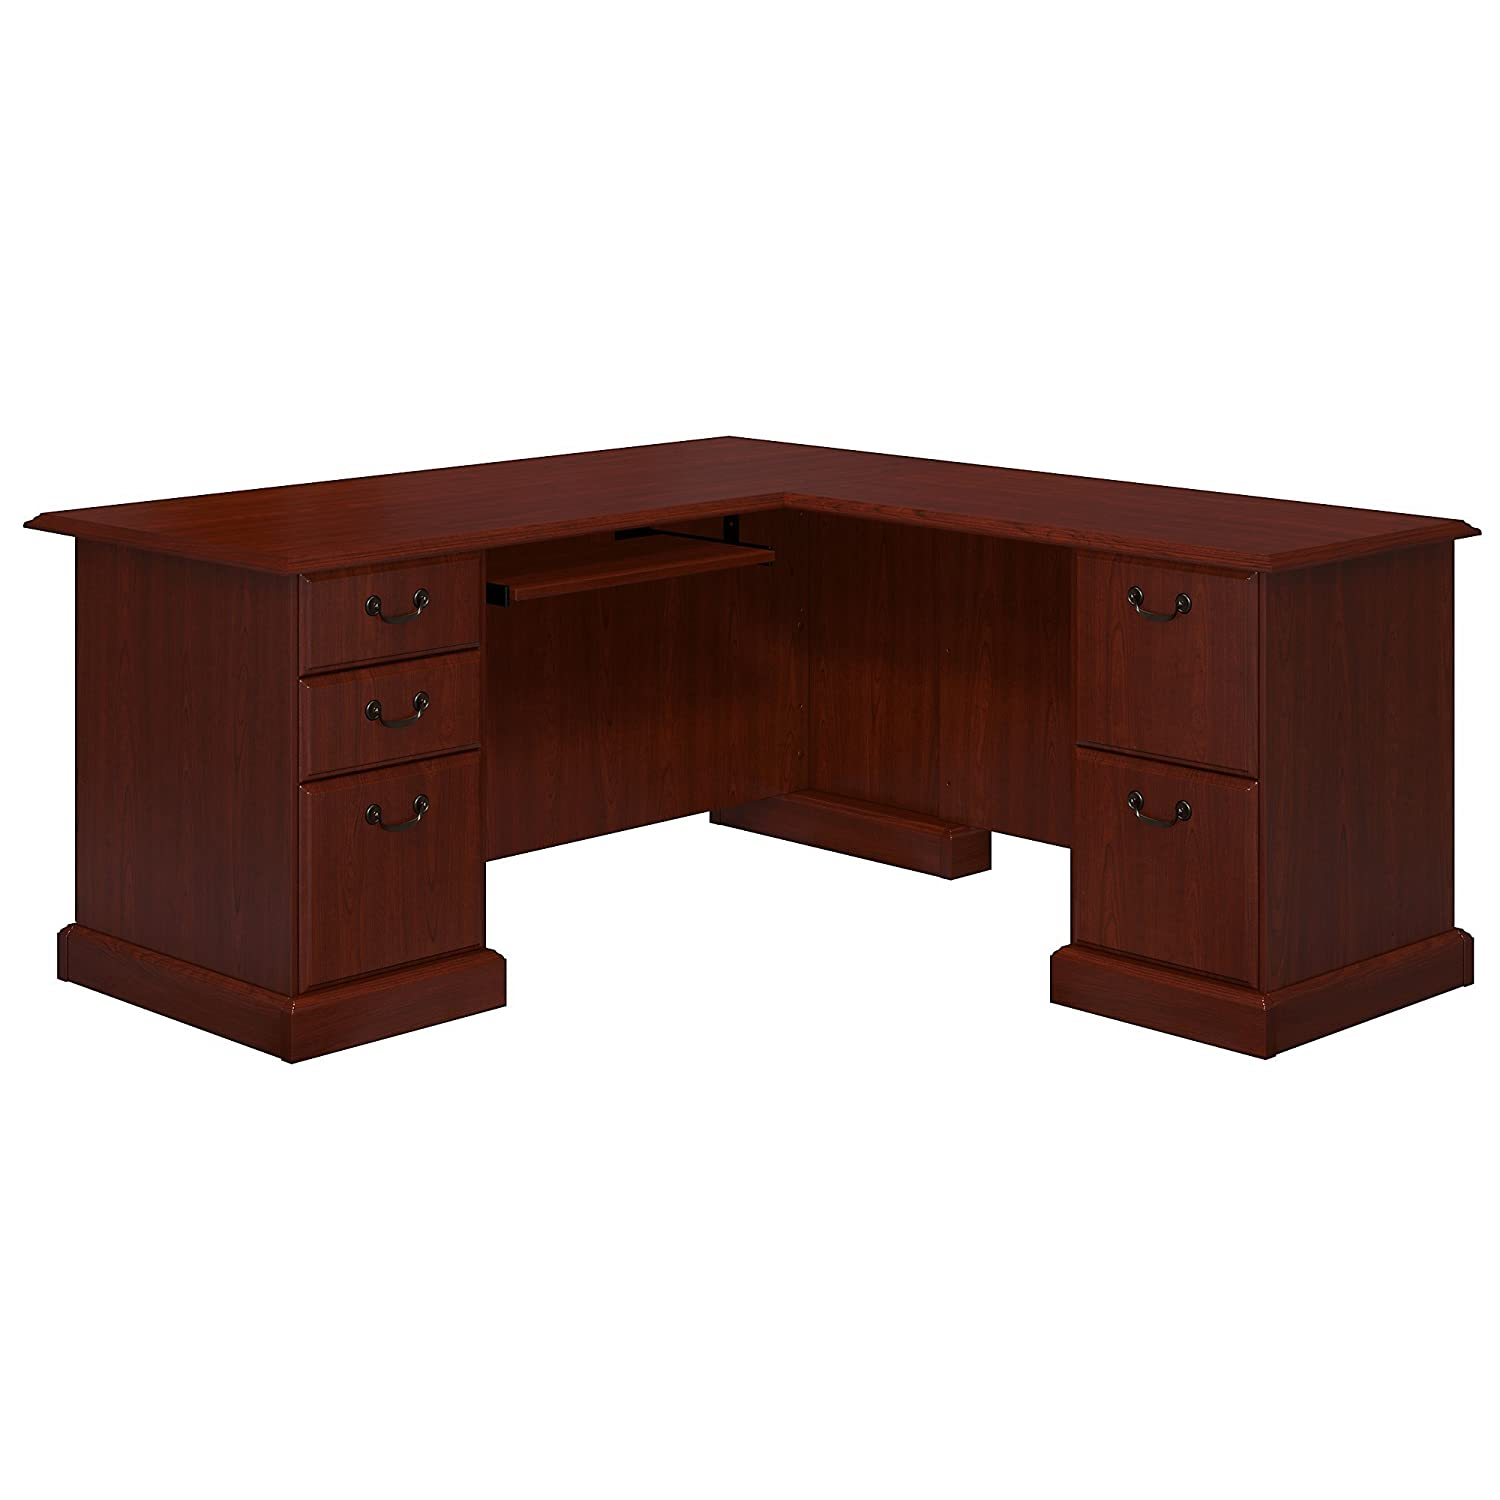 kathy ireland Home by Bush Furniture Bennington L-Desk in Harvest Cherry